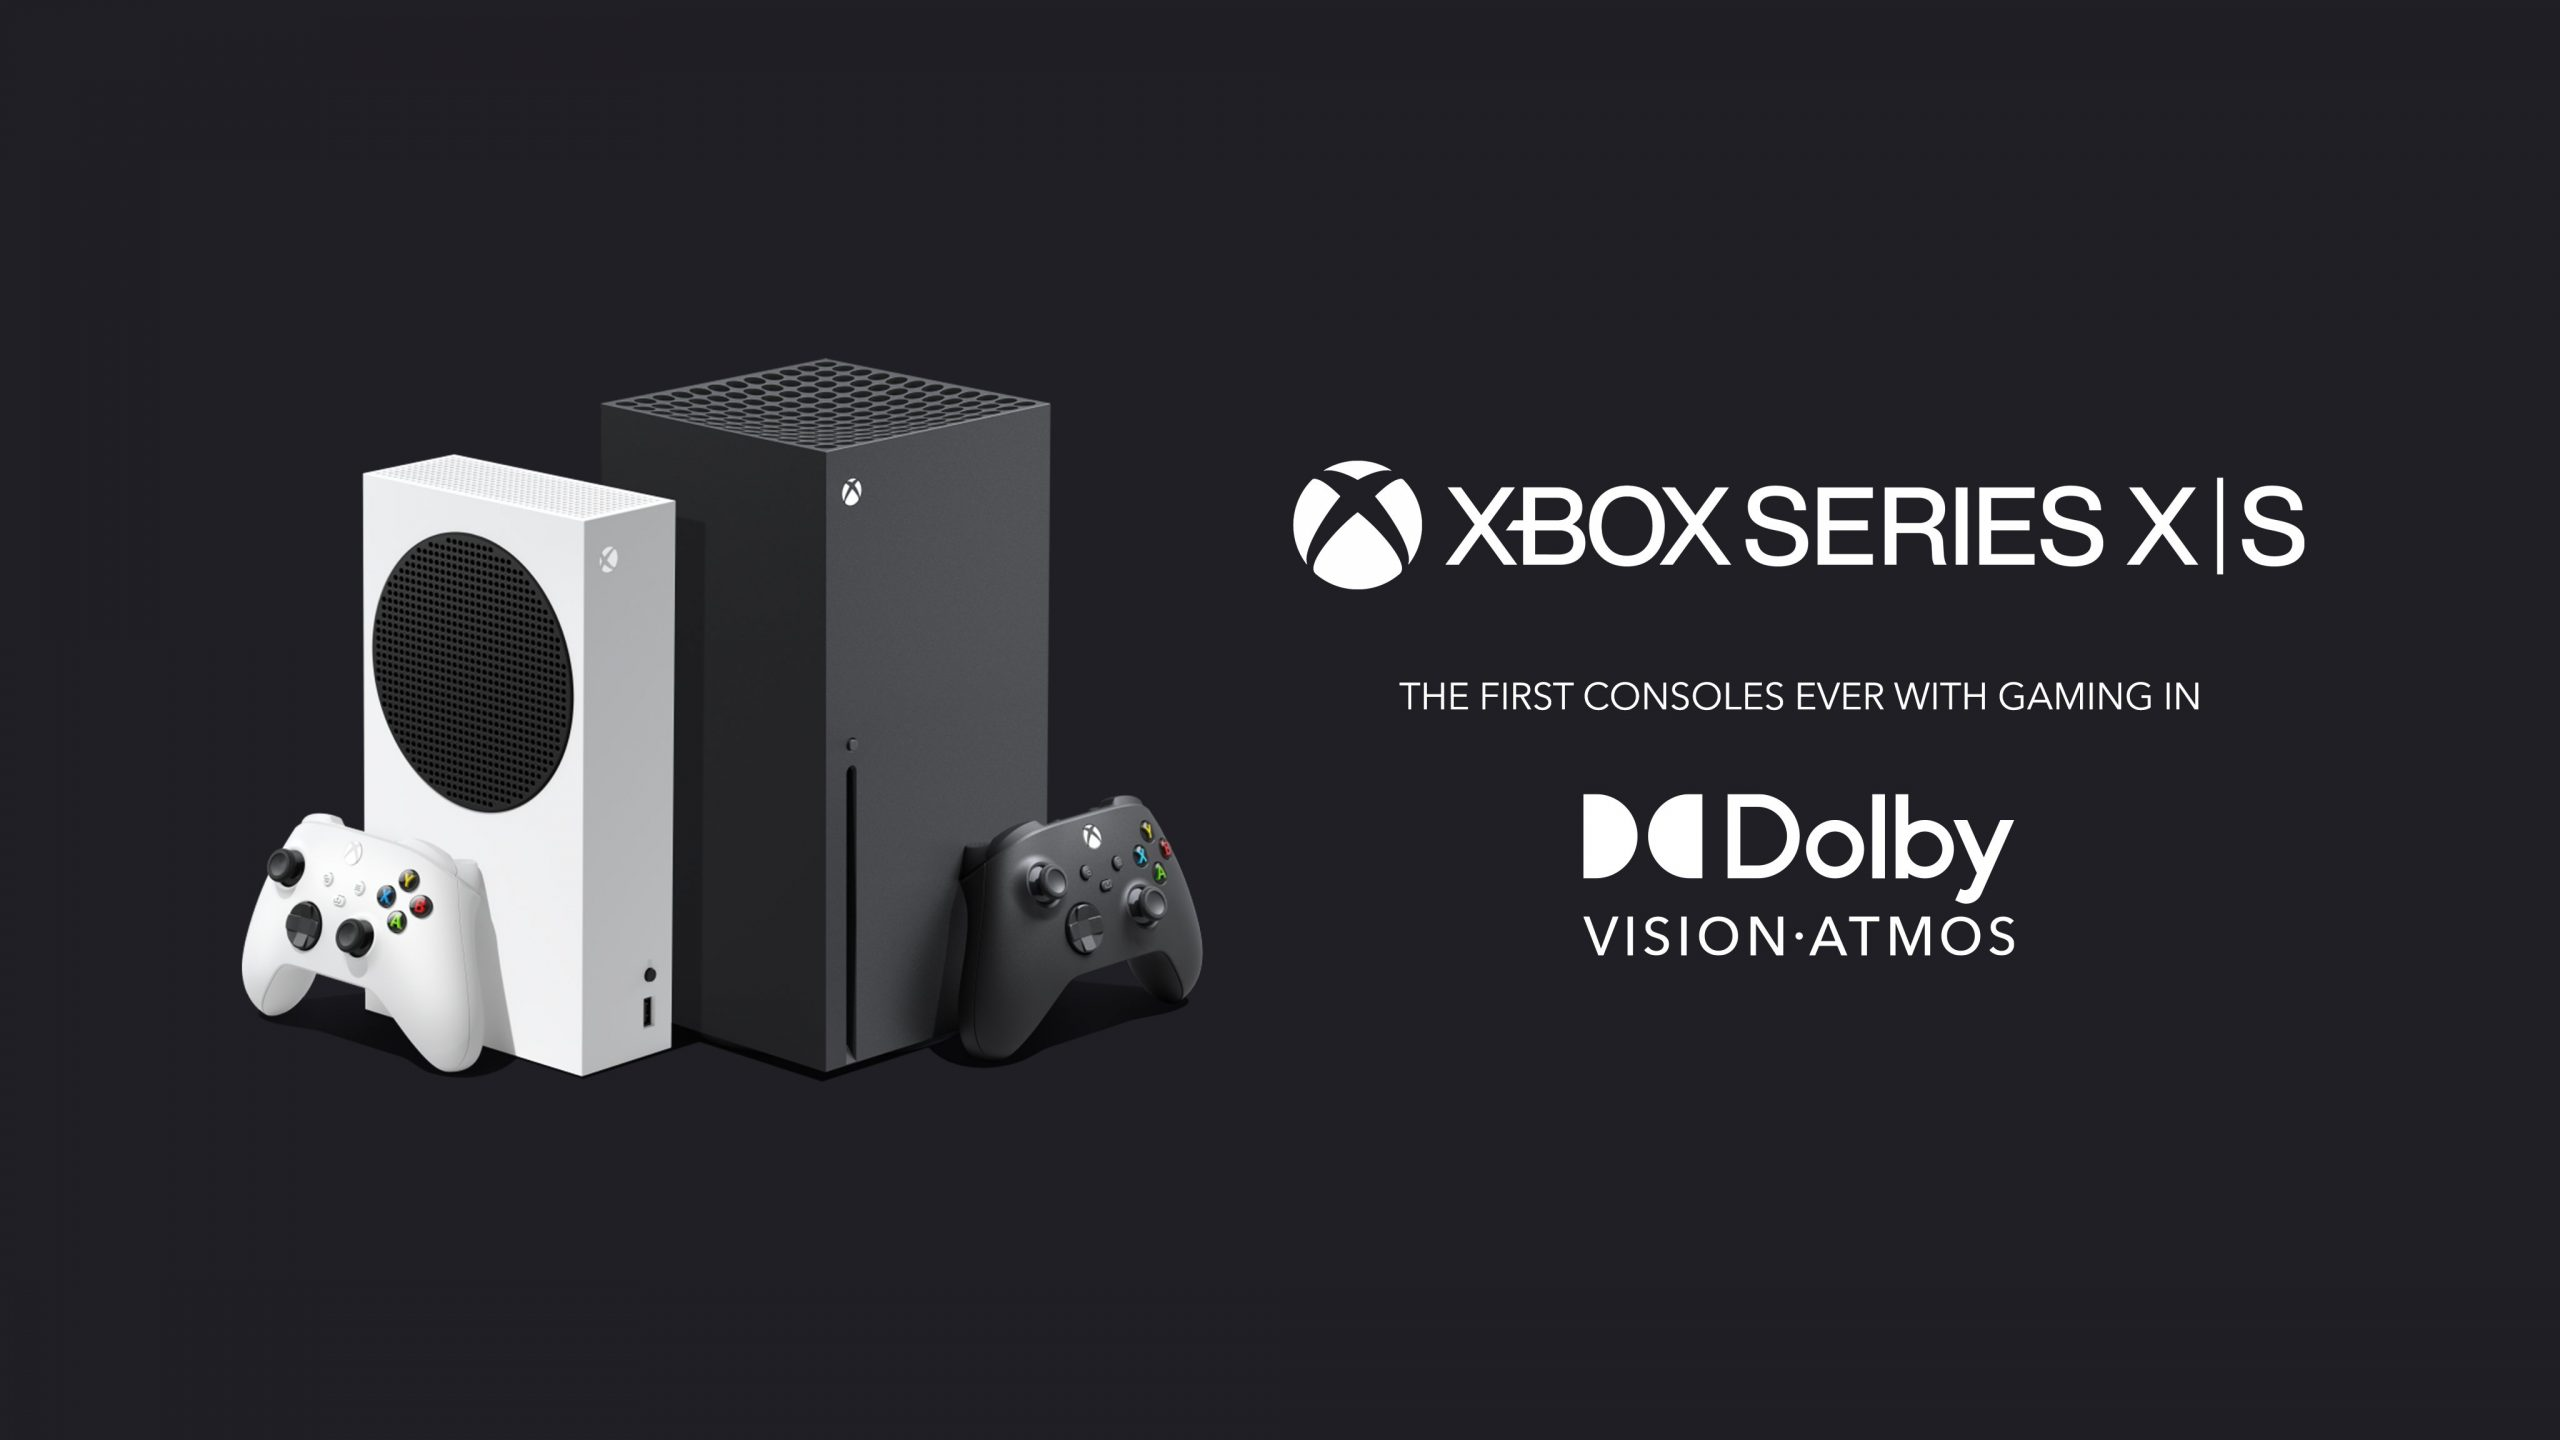 Xbox Series X S Dolby Vision